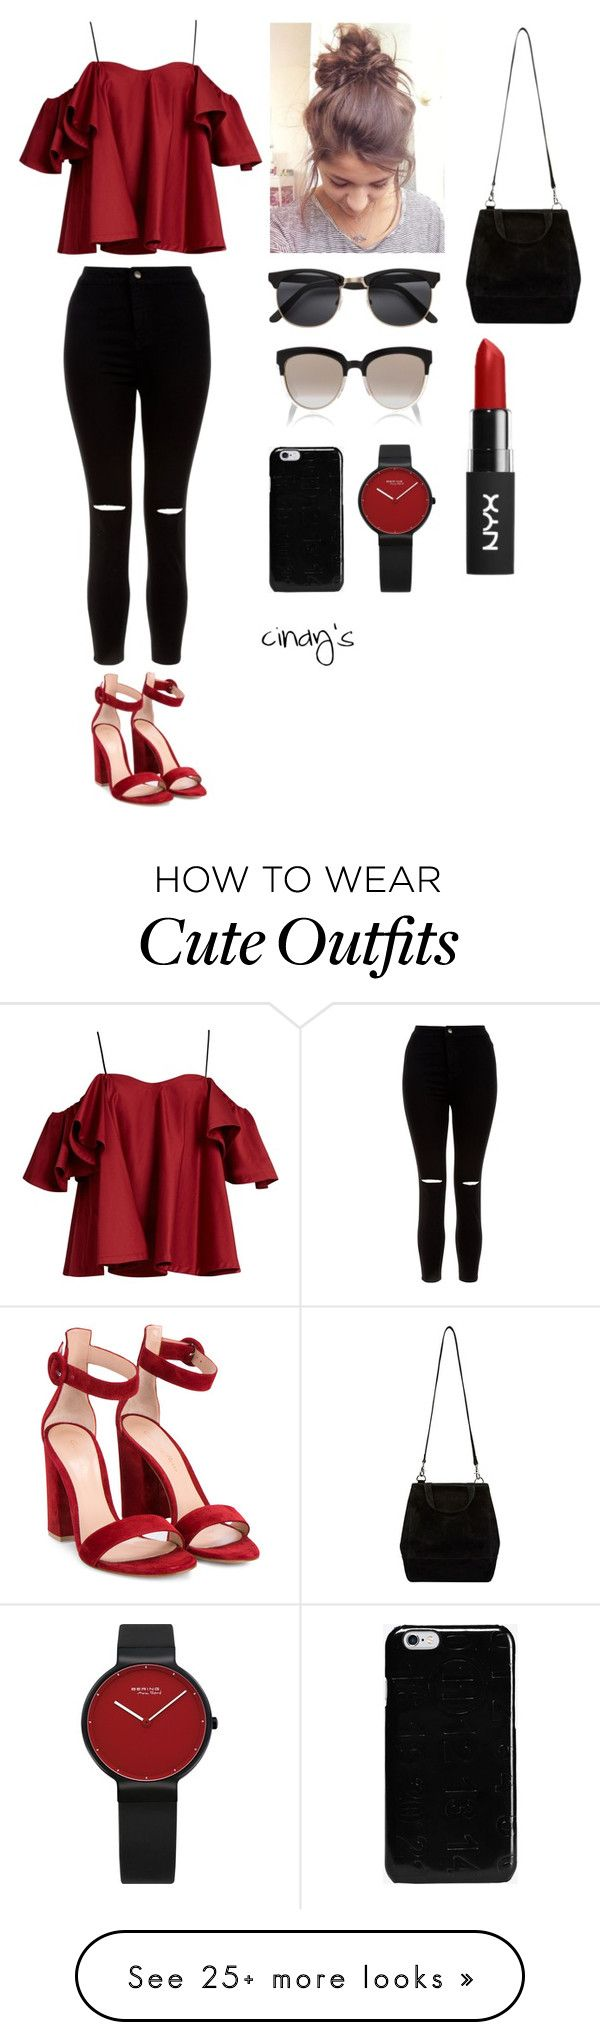 """""""outfit of the day3"""" by cindyvirgantari on Polyvore featuring New Look, Anna October, Maison Margiela, Christian Dior, Gianvito Rossi, black and red"""